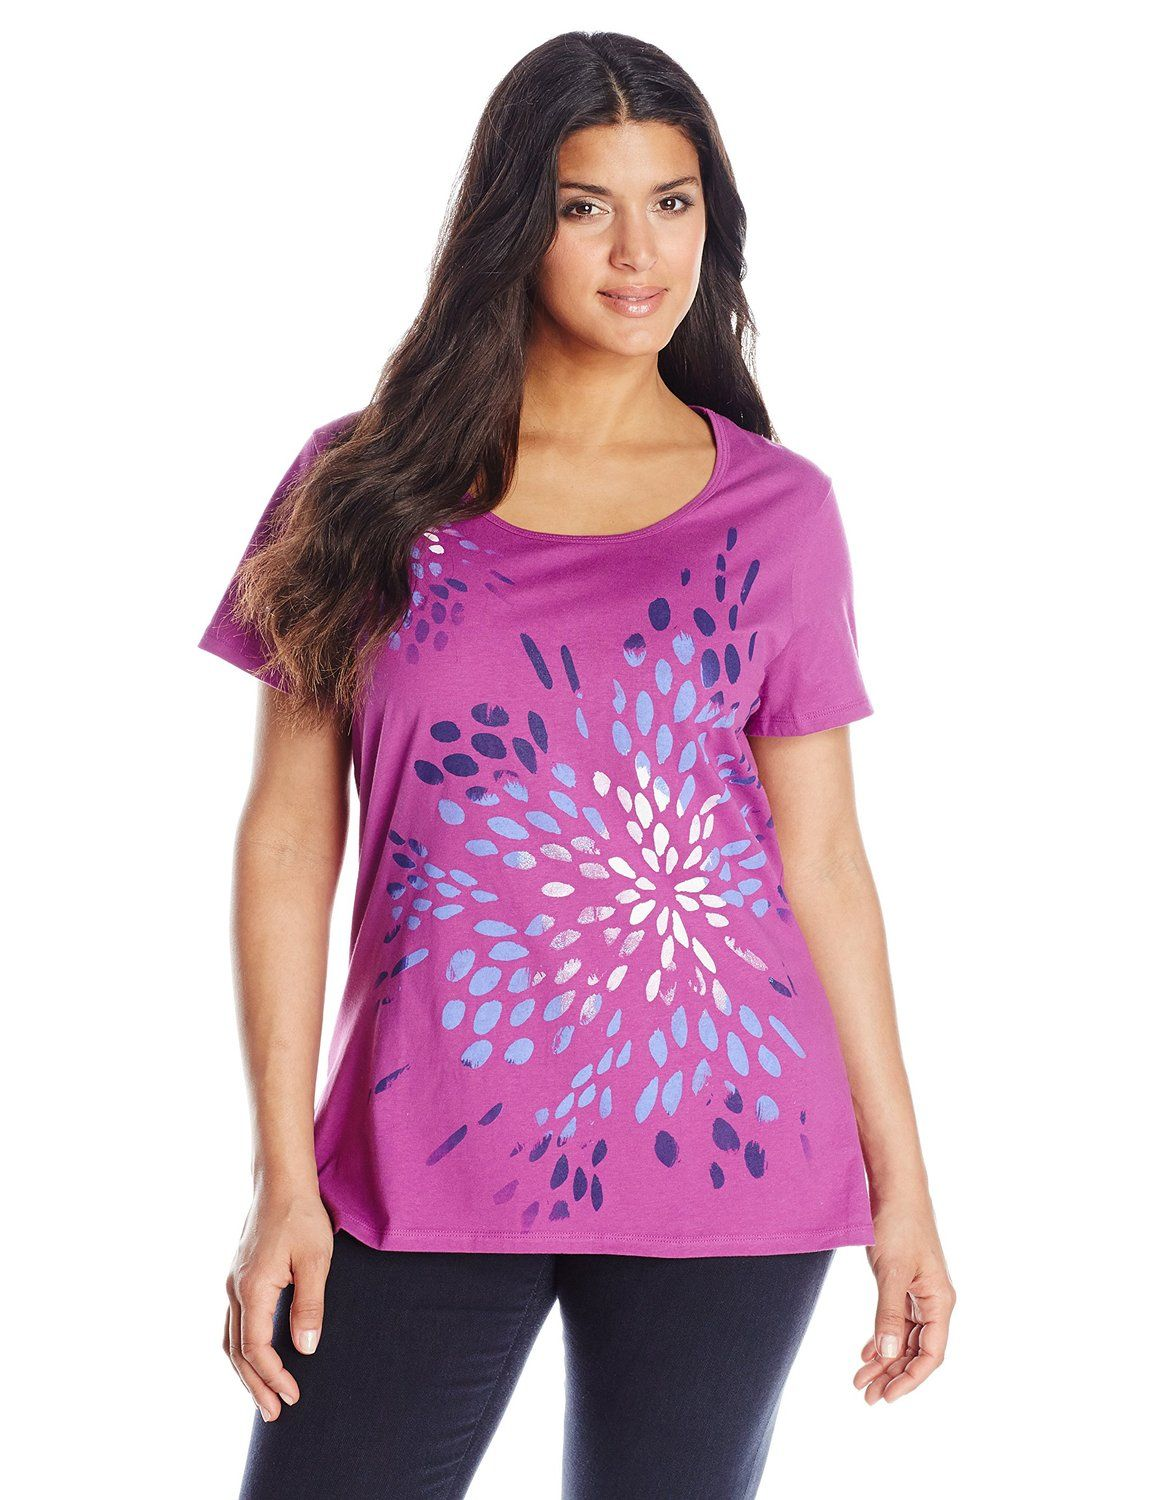 ff0060dccae Just My Size Women s Plus-Size Short Sleeve Scoop Neck Graphic Tee at Amazon  Women s Clothing store